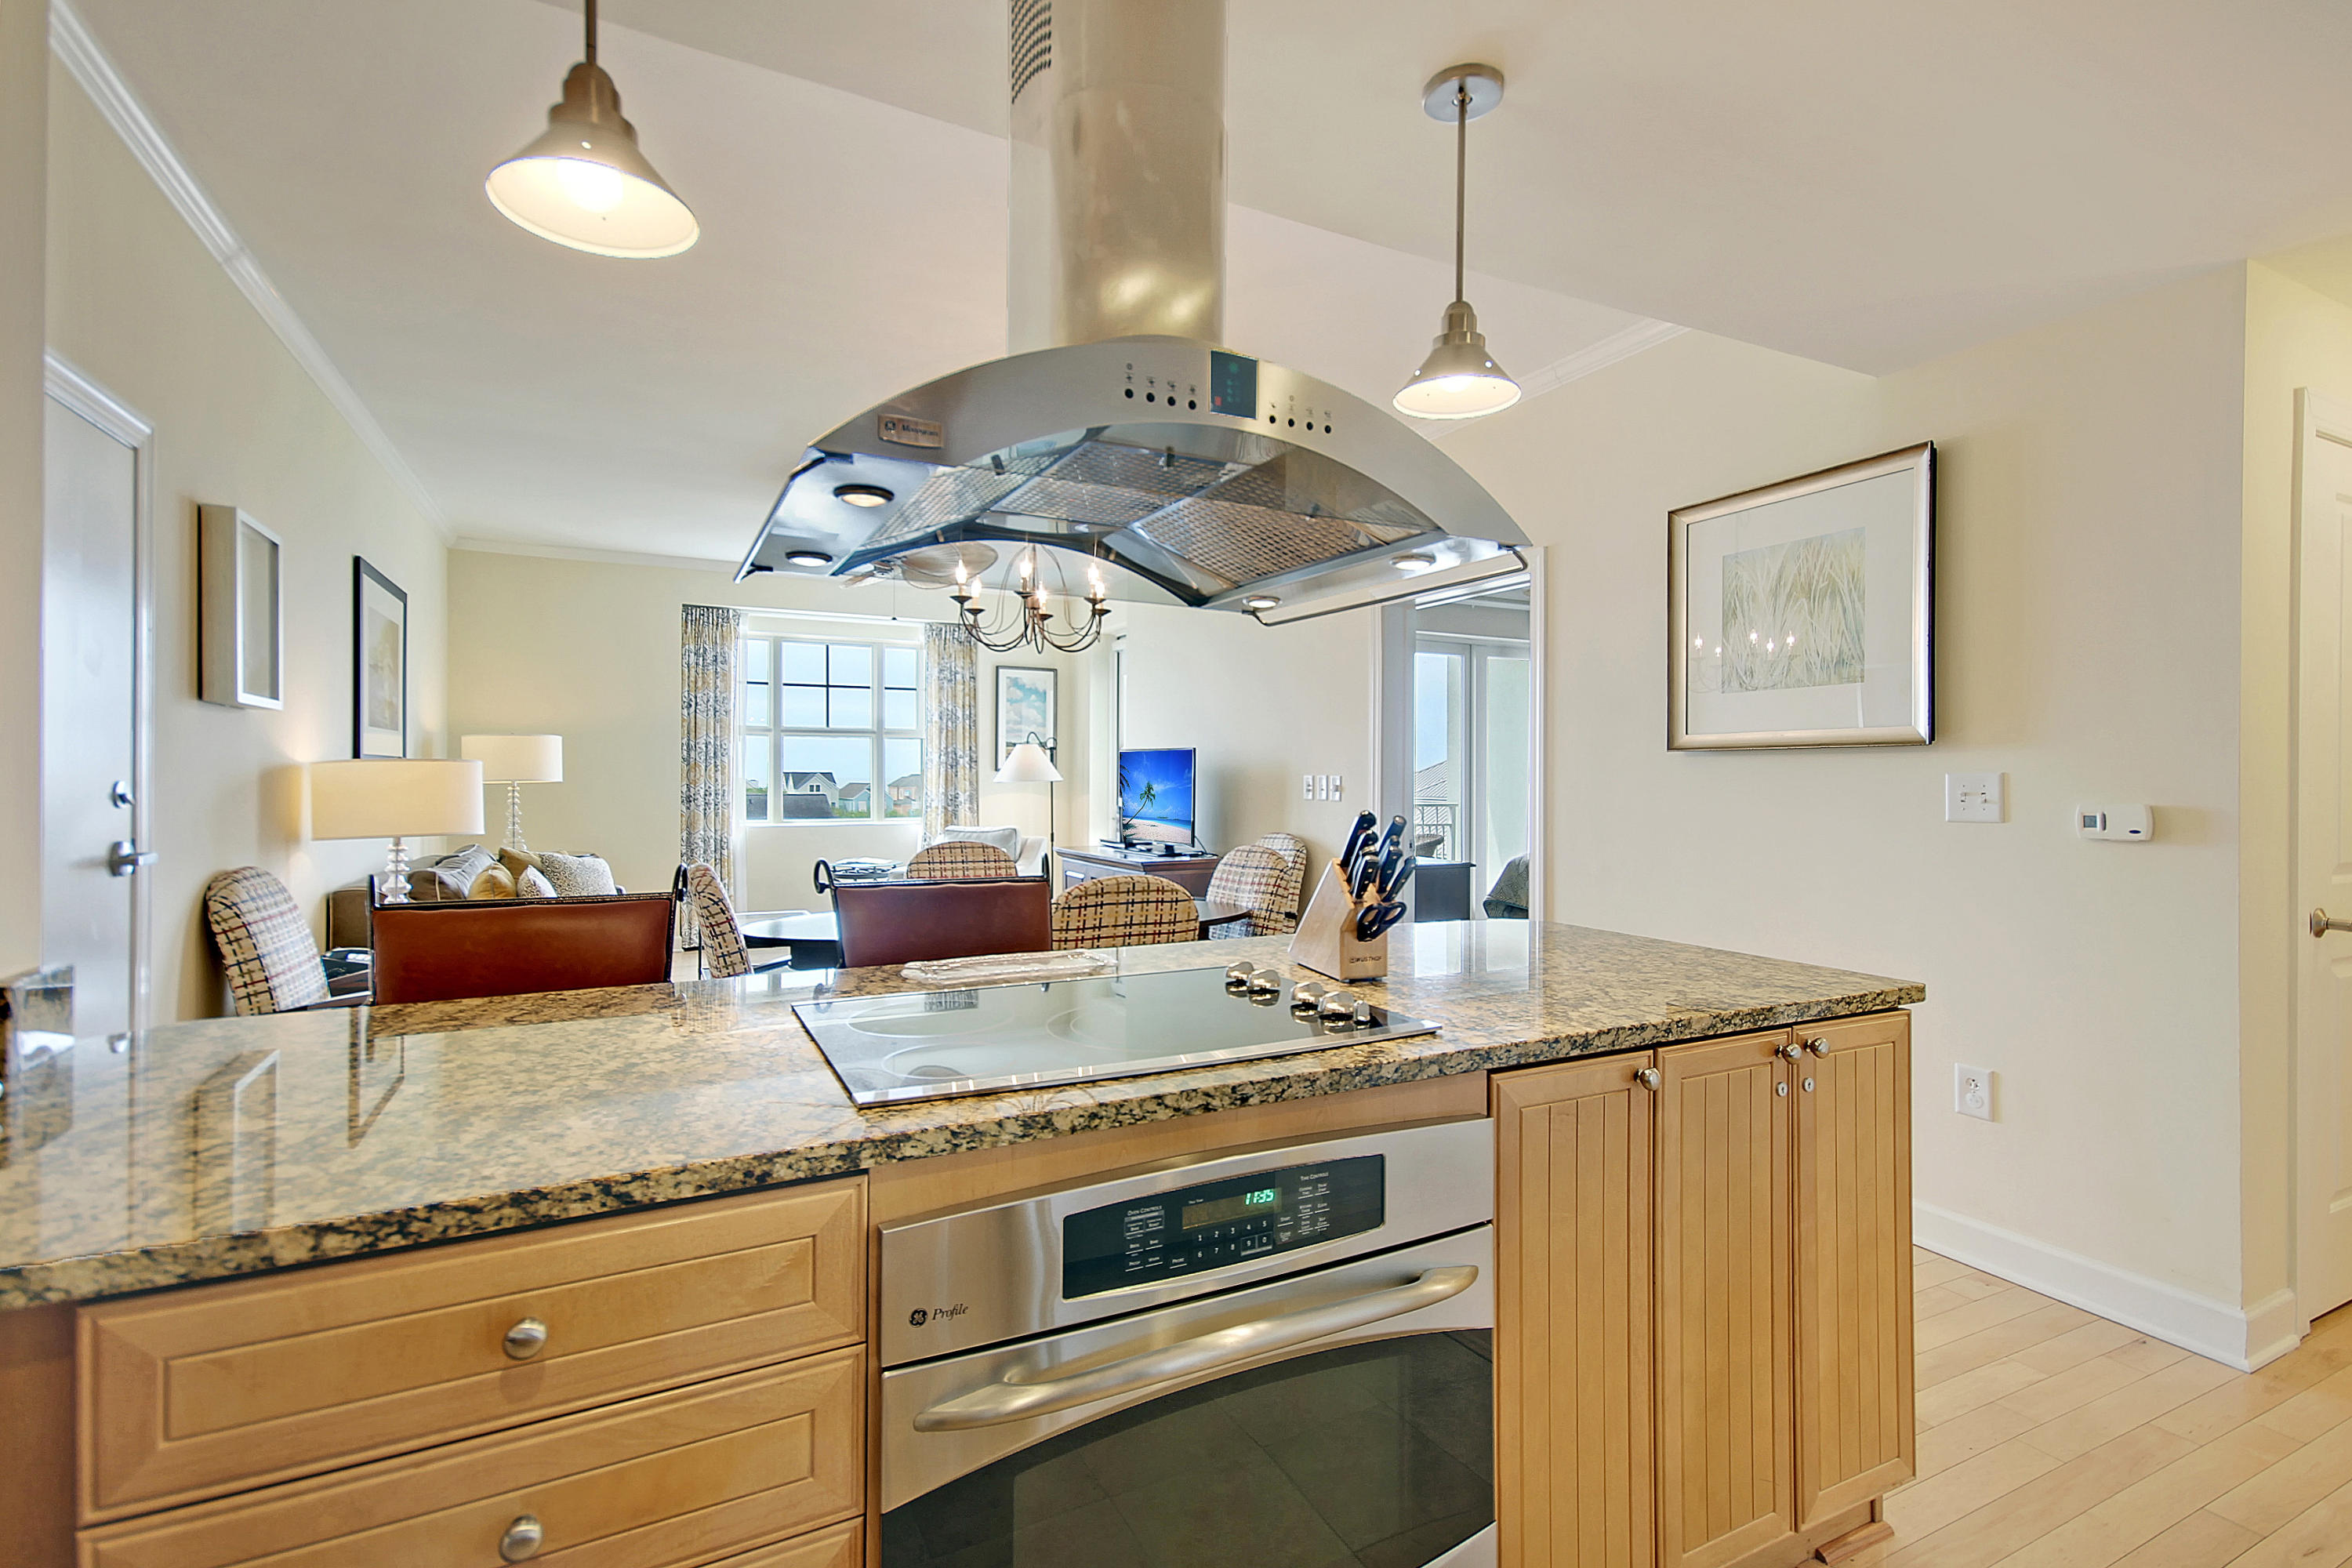 Wild Dunes Homes For Sale - 415/417-B The Village At Wild Dunes, Isle of Palms, SC - 0